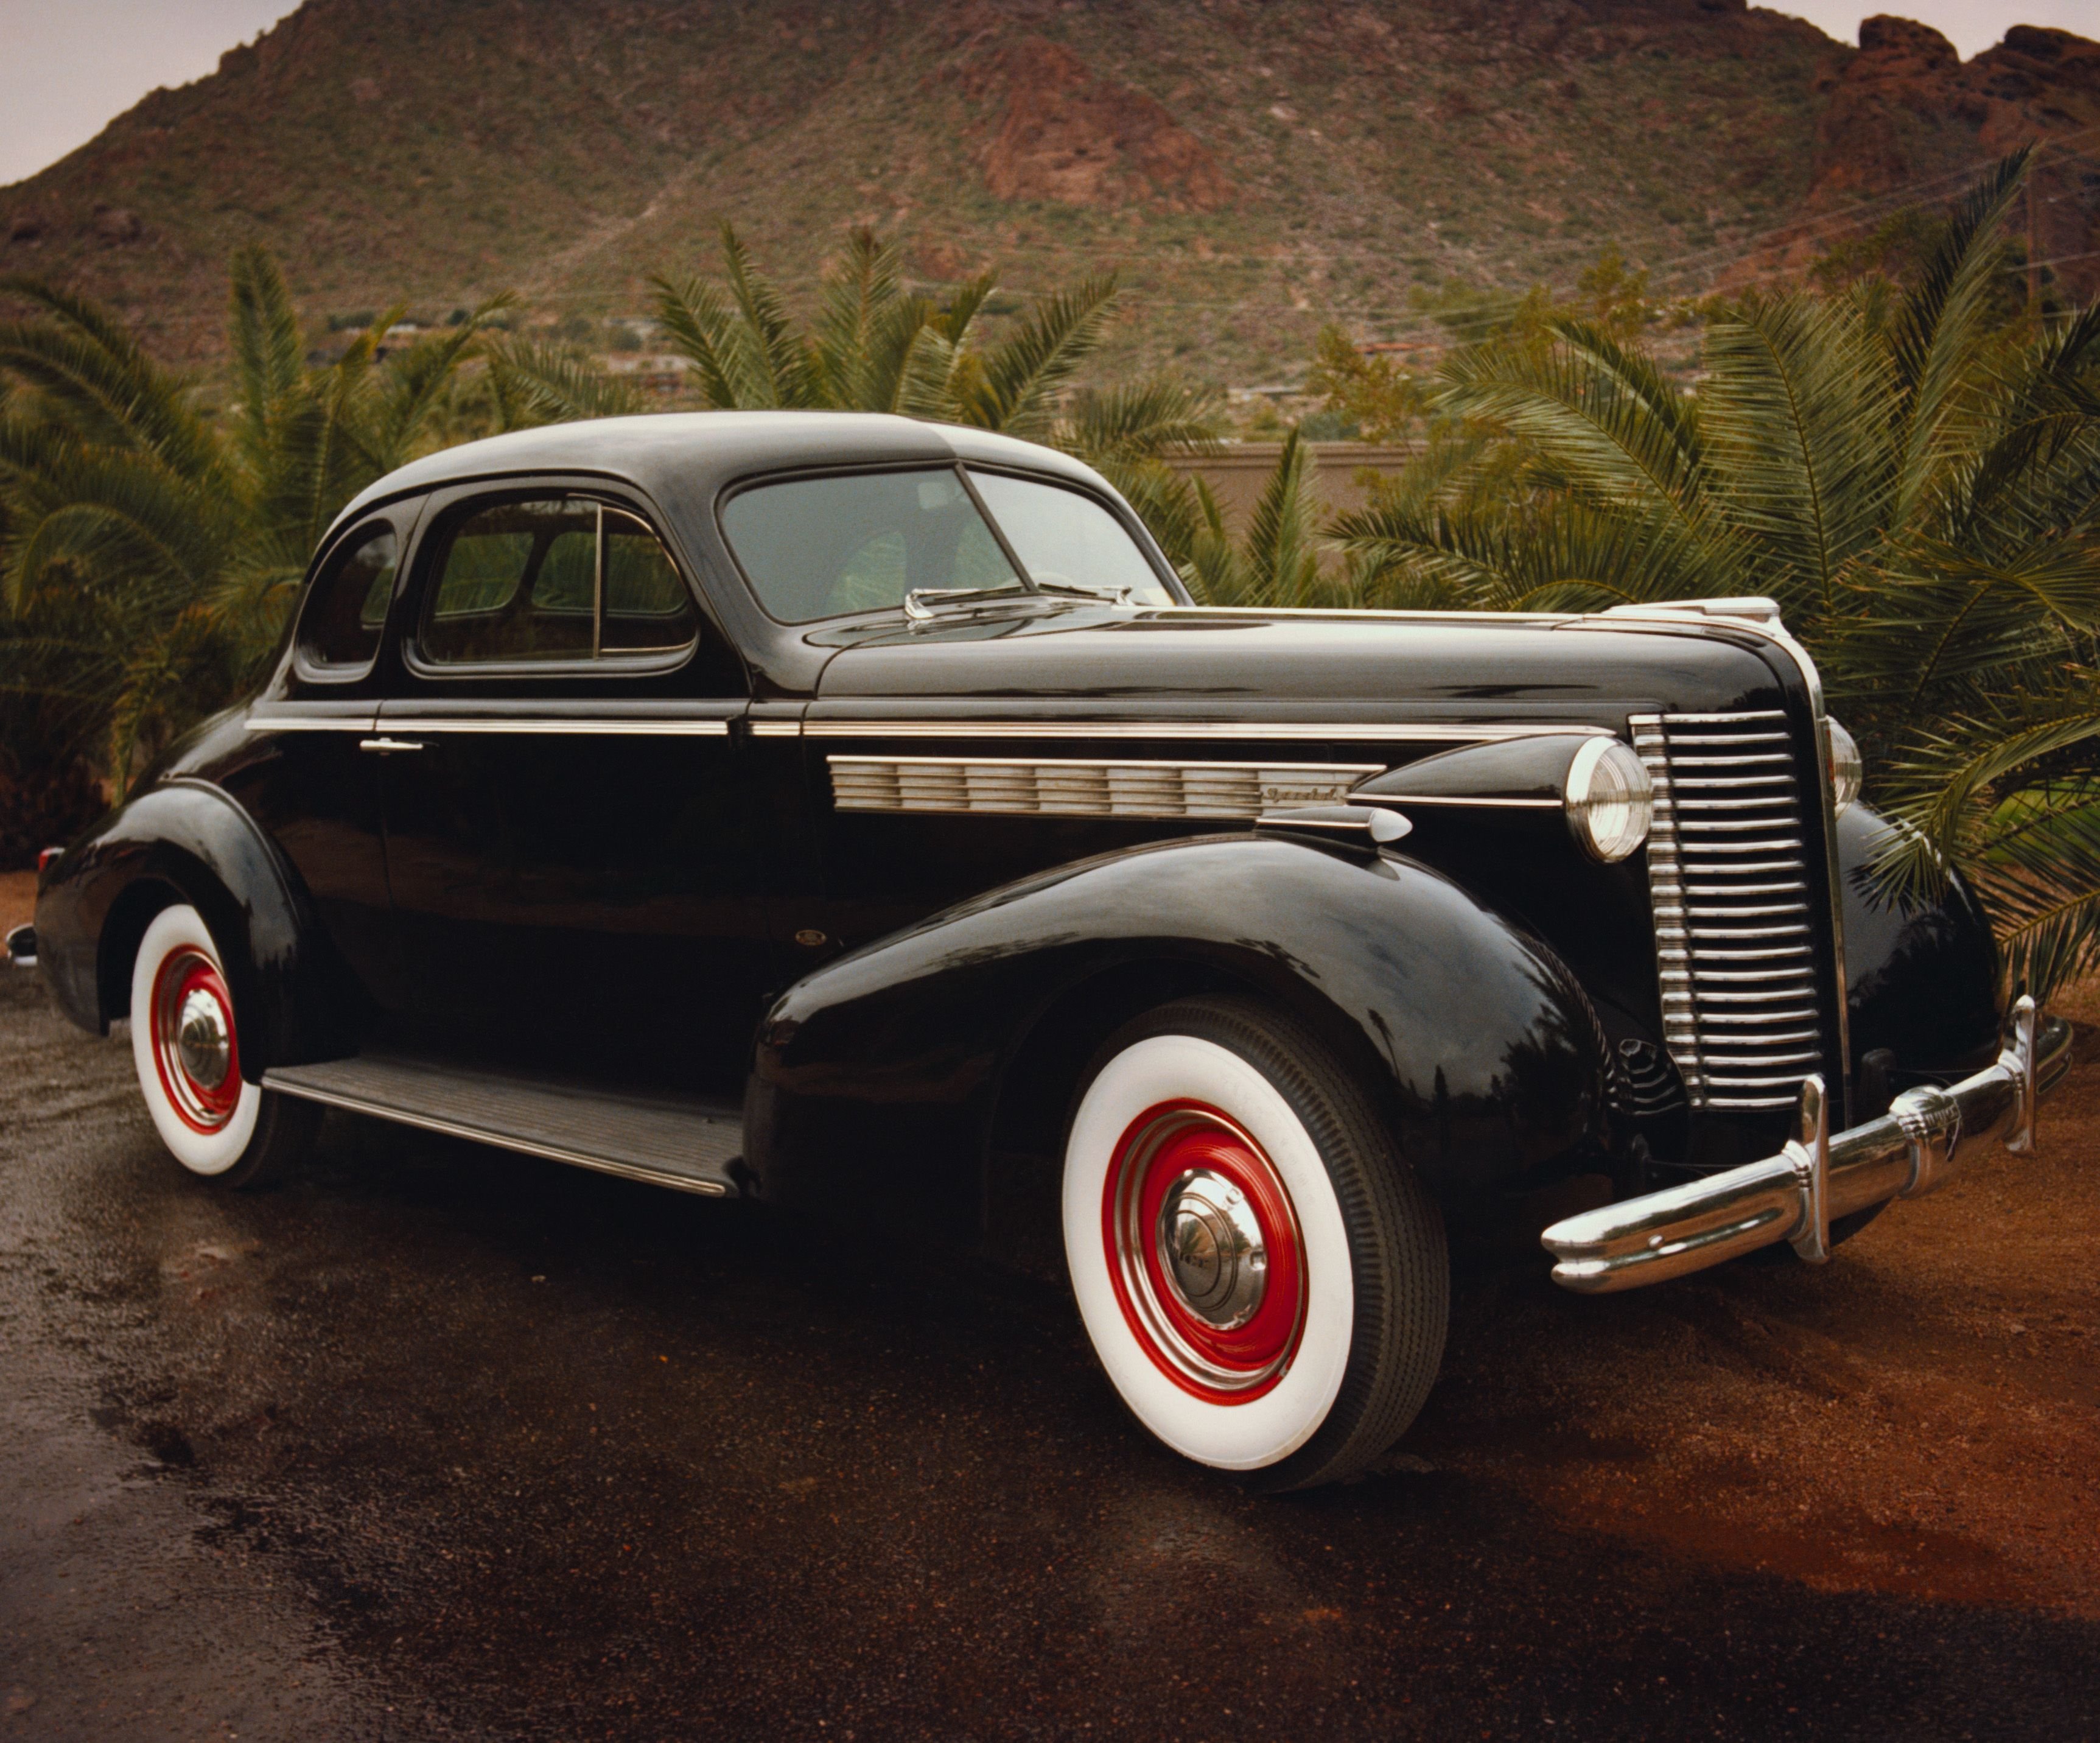 1938 buick special series 40 two passenger business coupe model 46